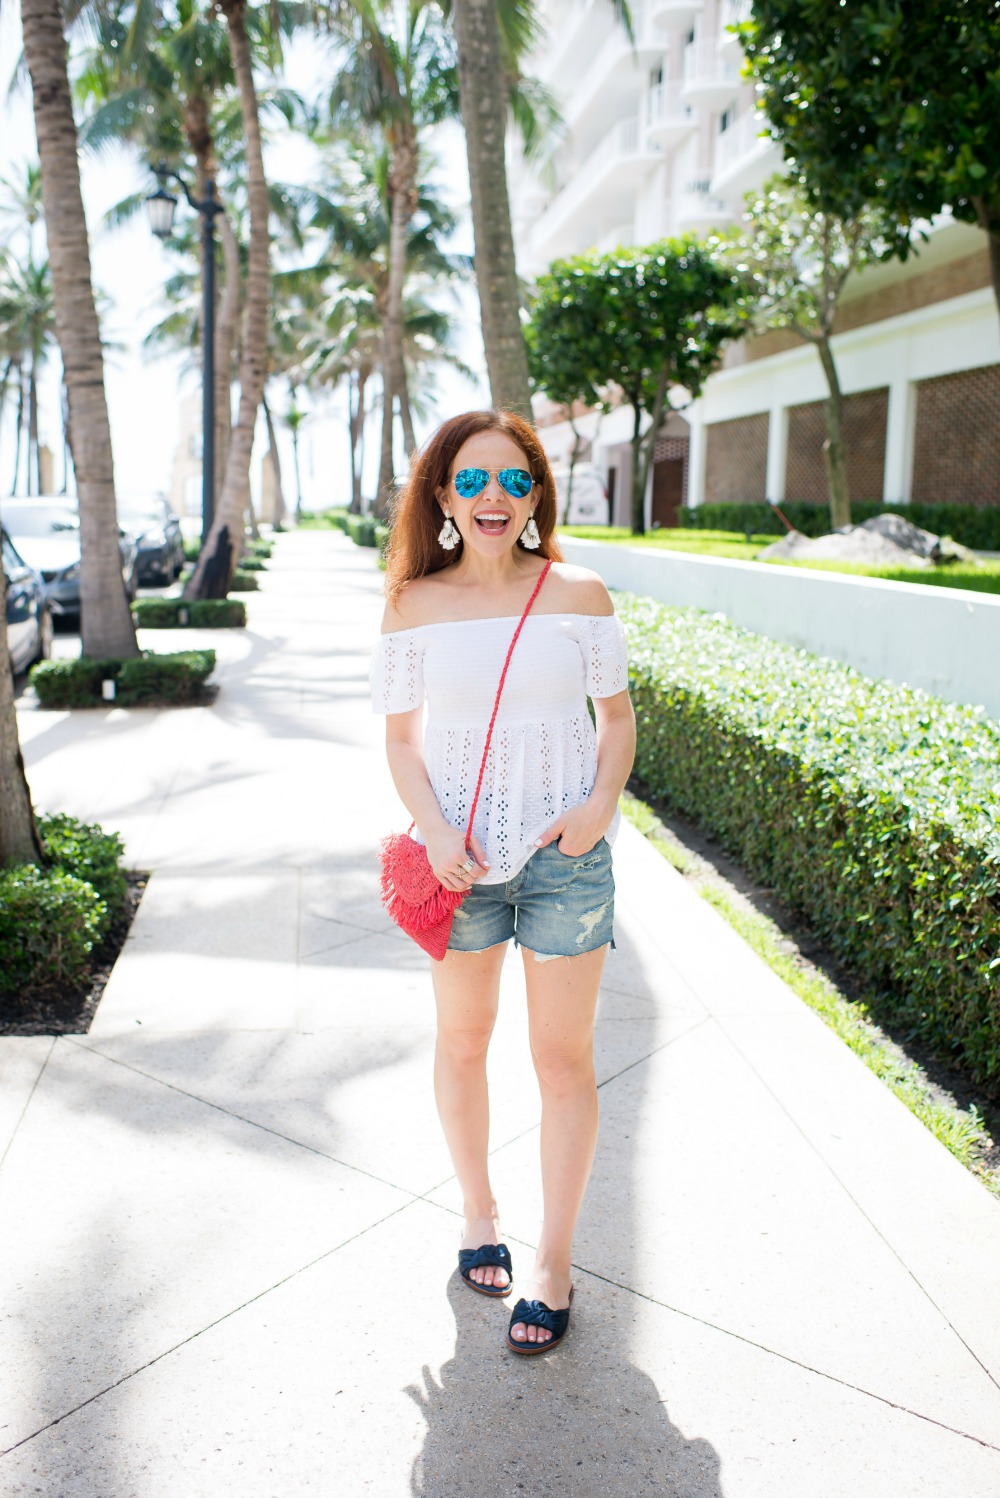 Fun summer & 4th of July outfits - Casual Cute 4th of July Outfit featured by popular Florida style blogger, The Modern Savvy